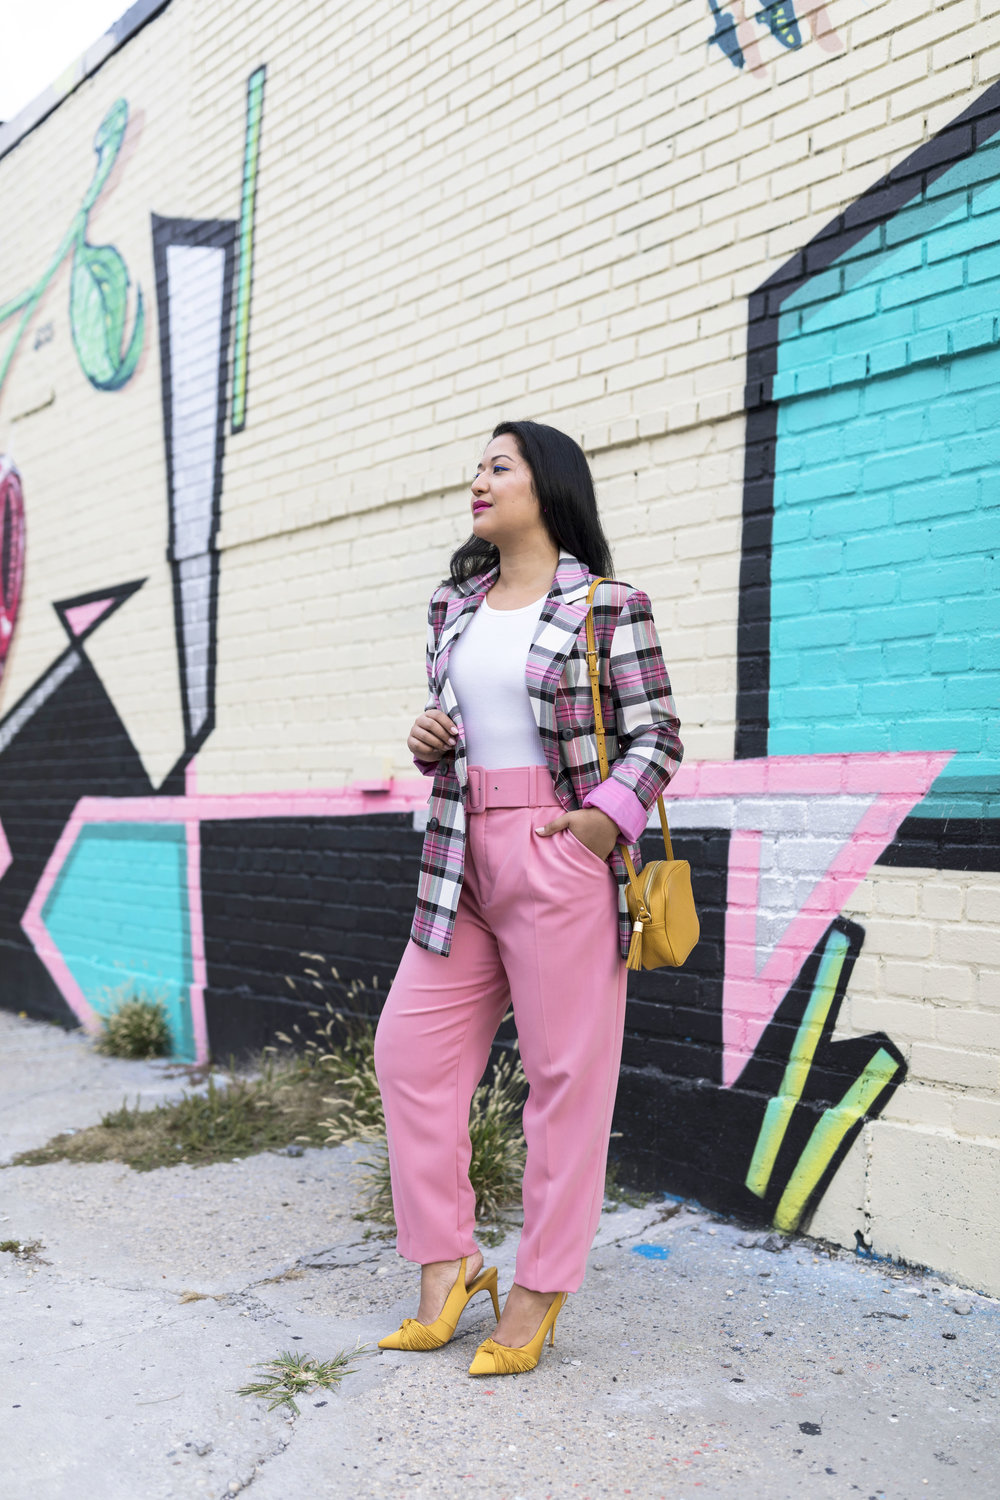 Krity S x Plaid Pink Suit3.jpg